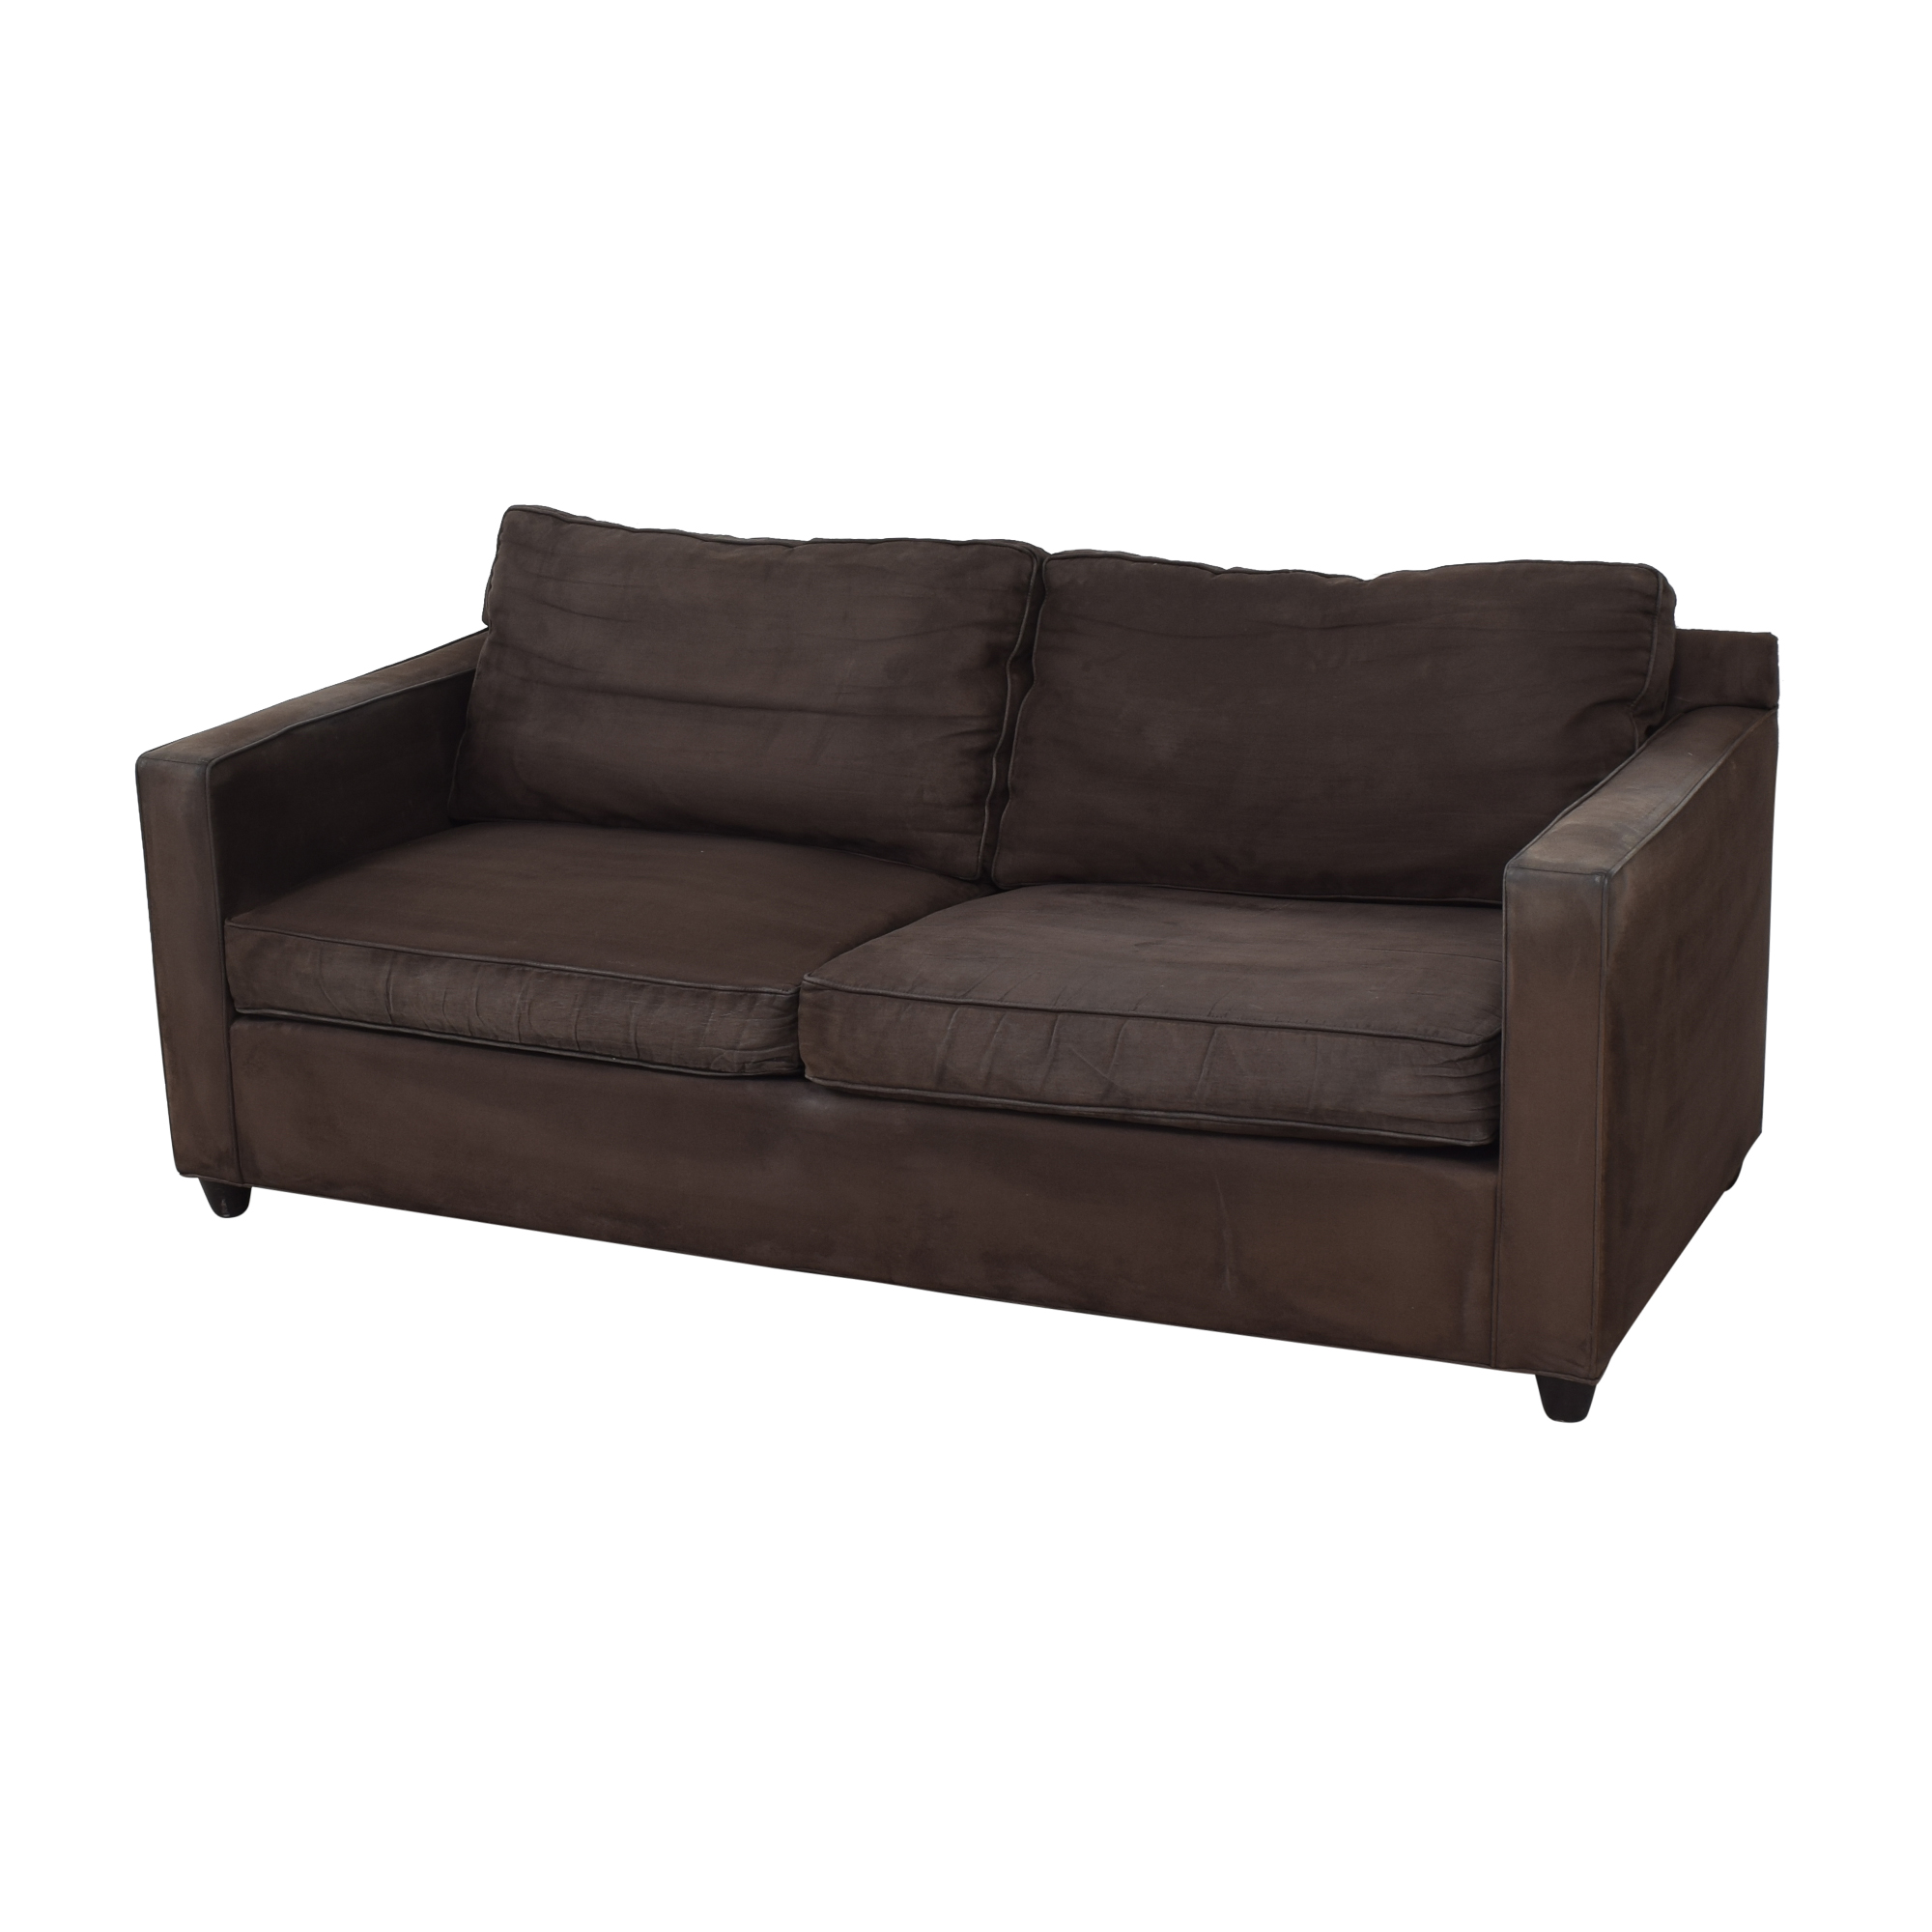 Crate & Barrel Crate & Barrel Troy Sofa coupon